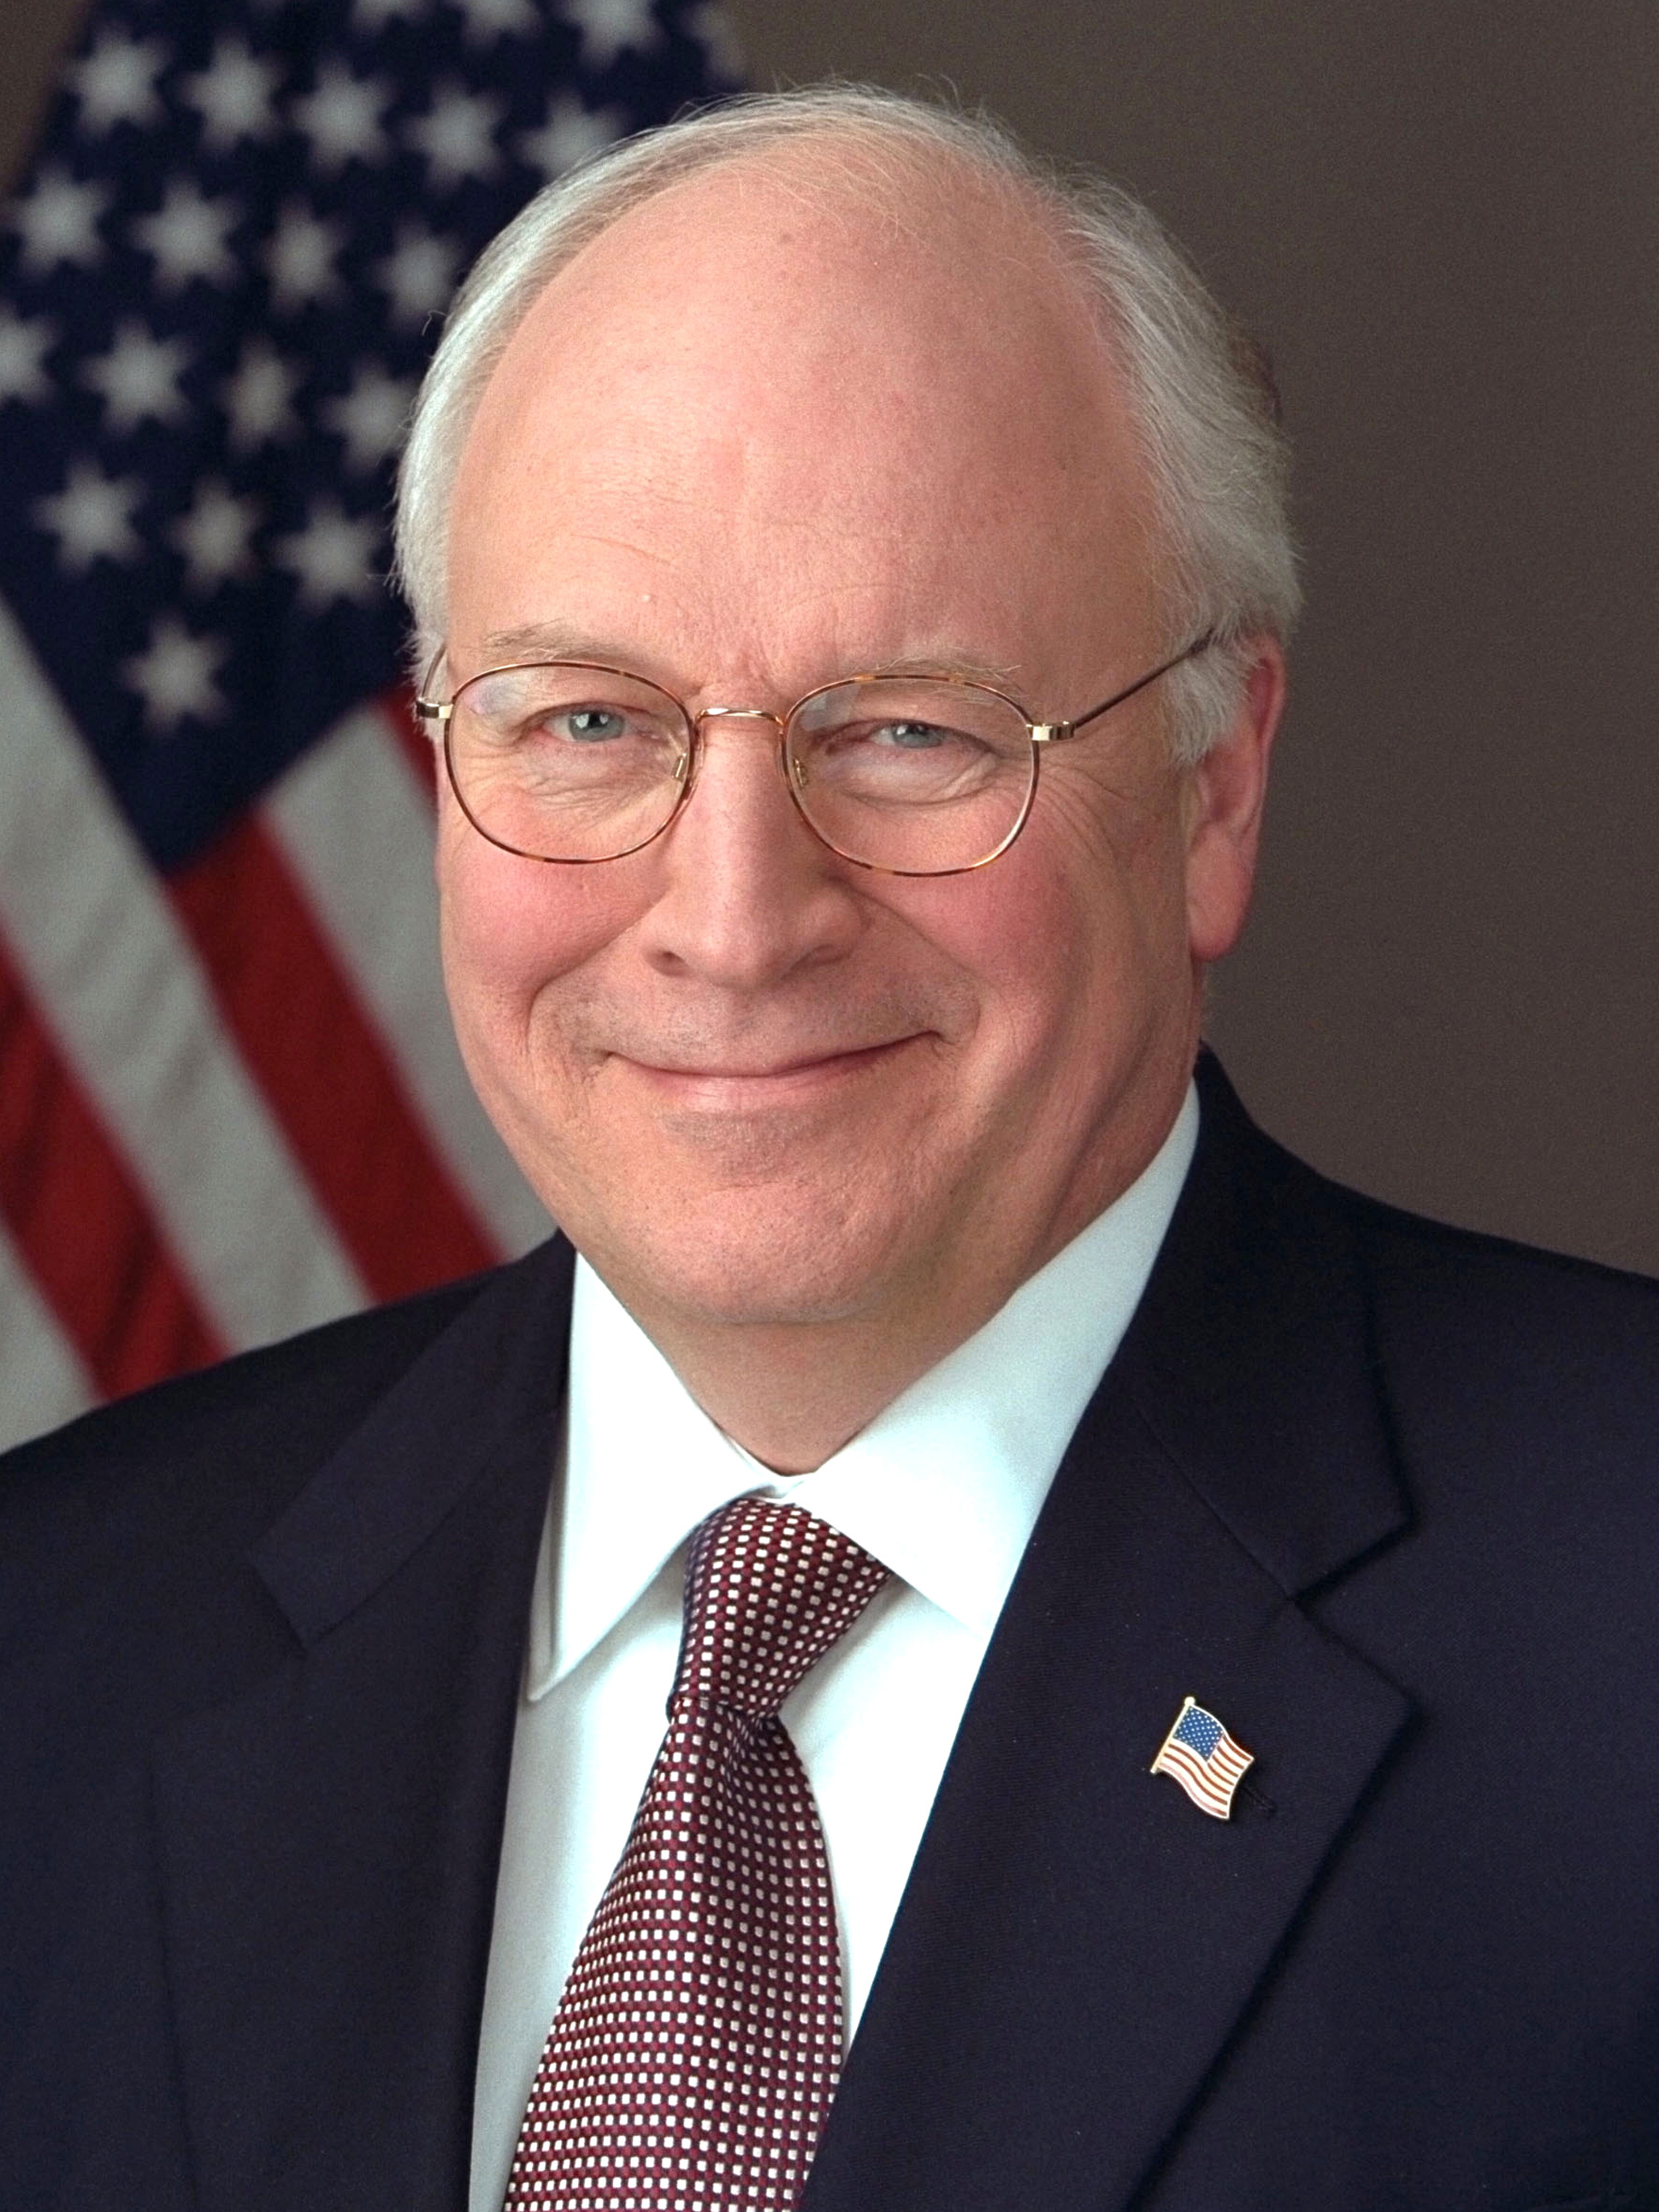 Description 46 Dick Cheney 3x4.jpg